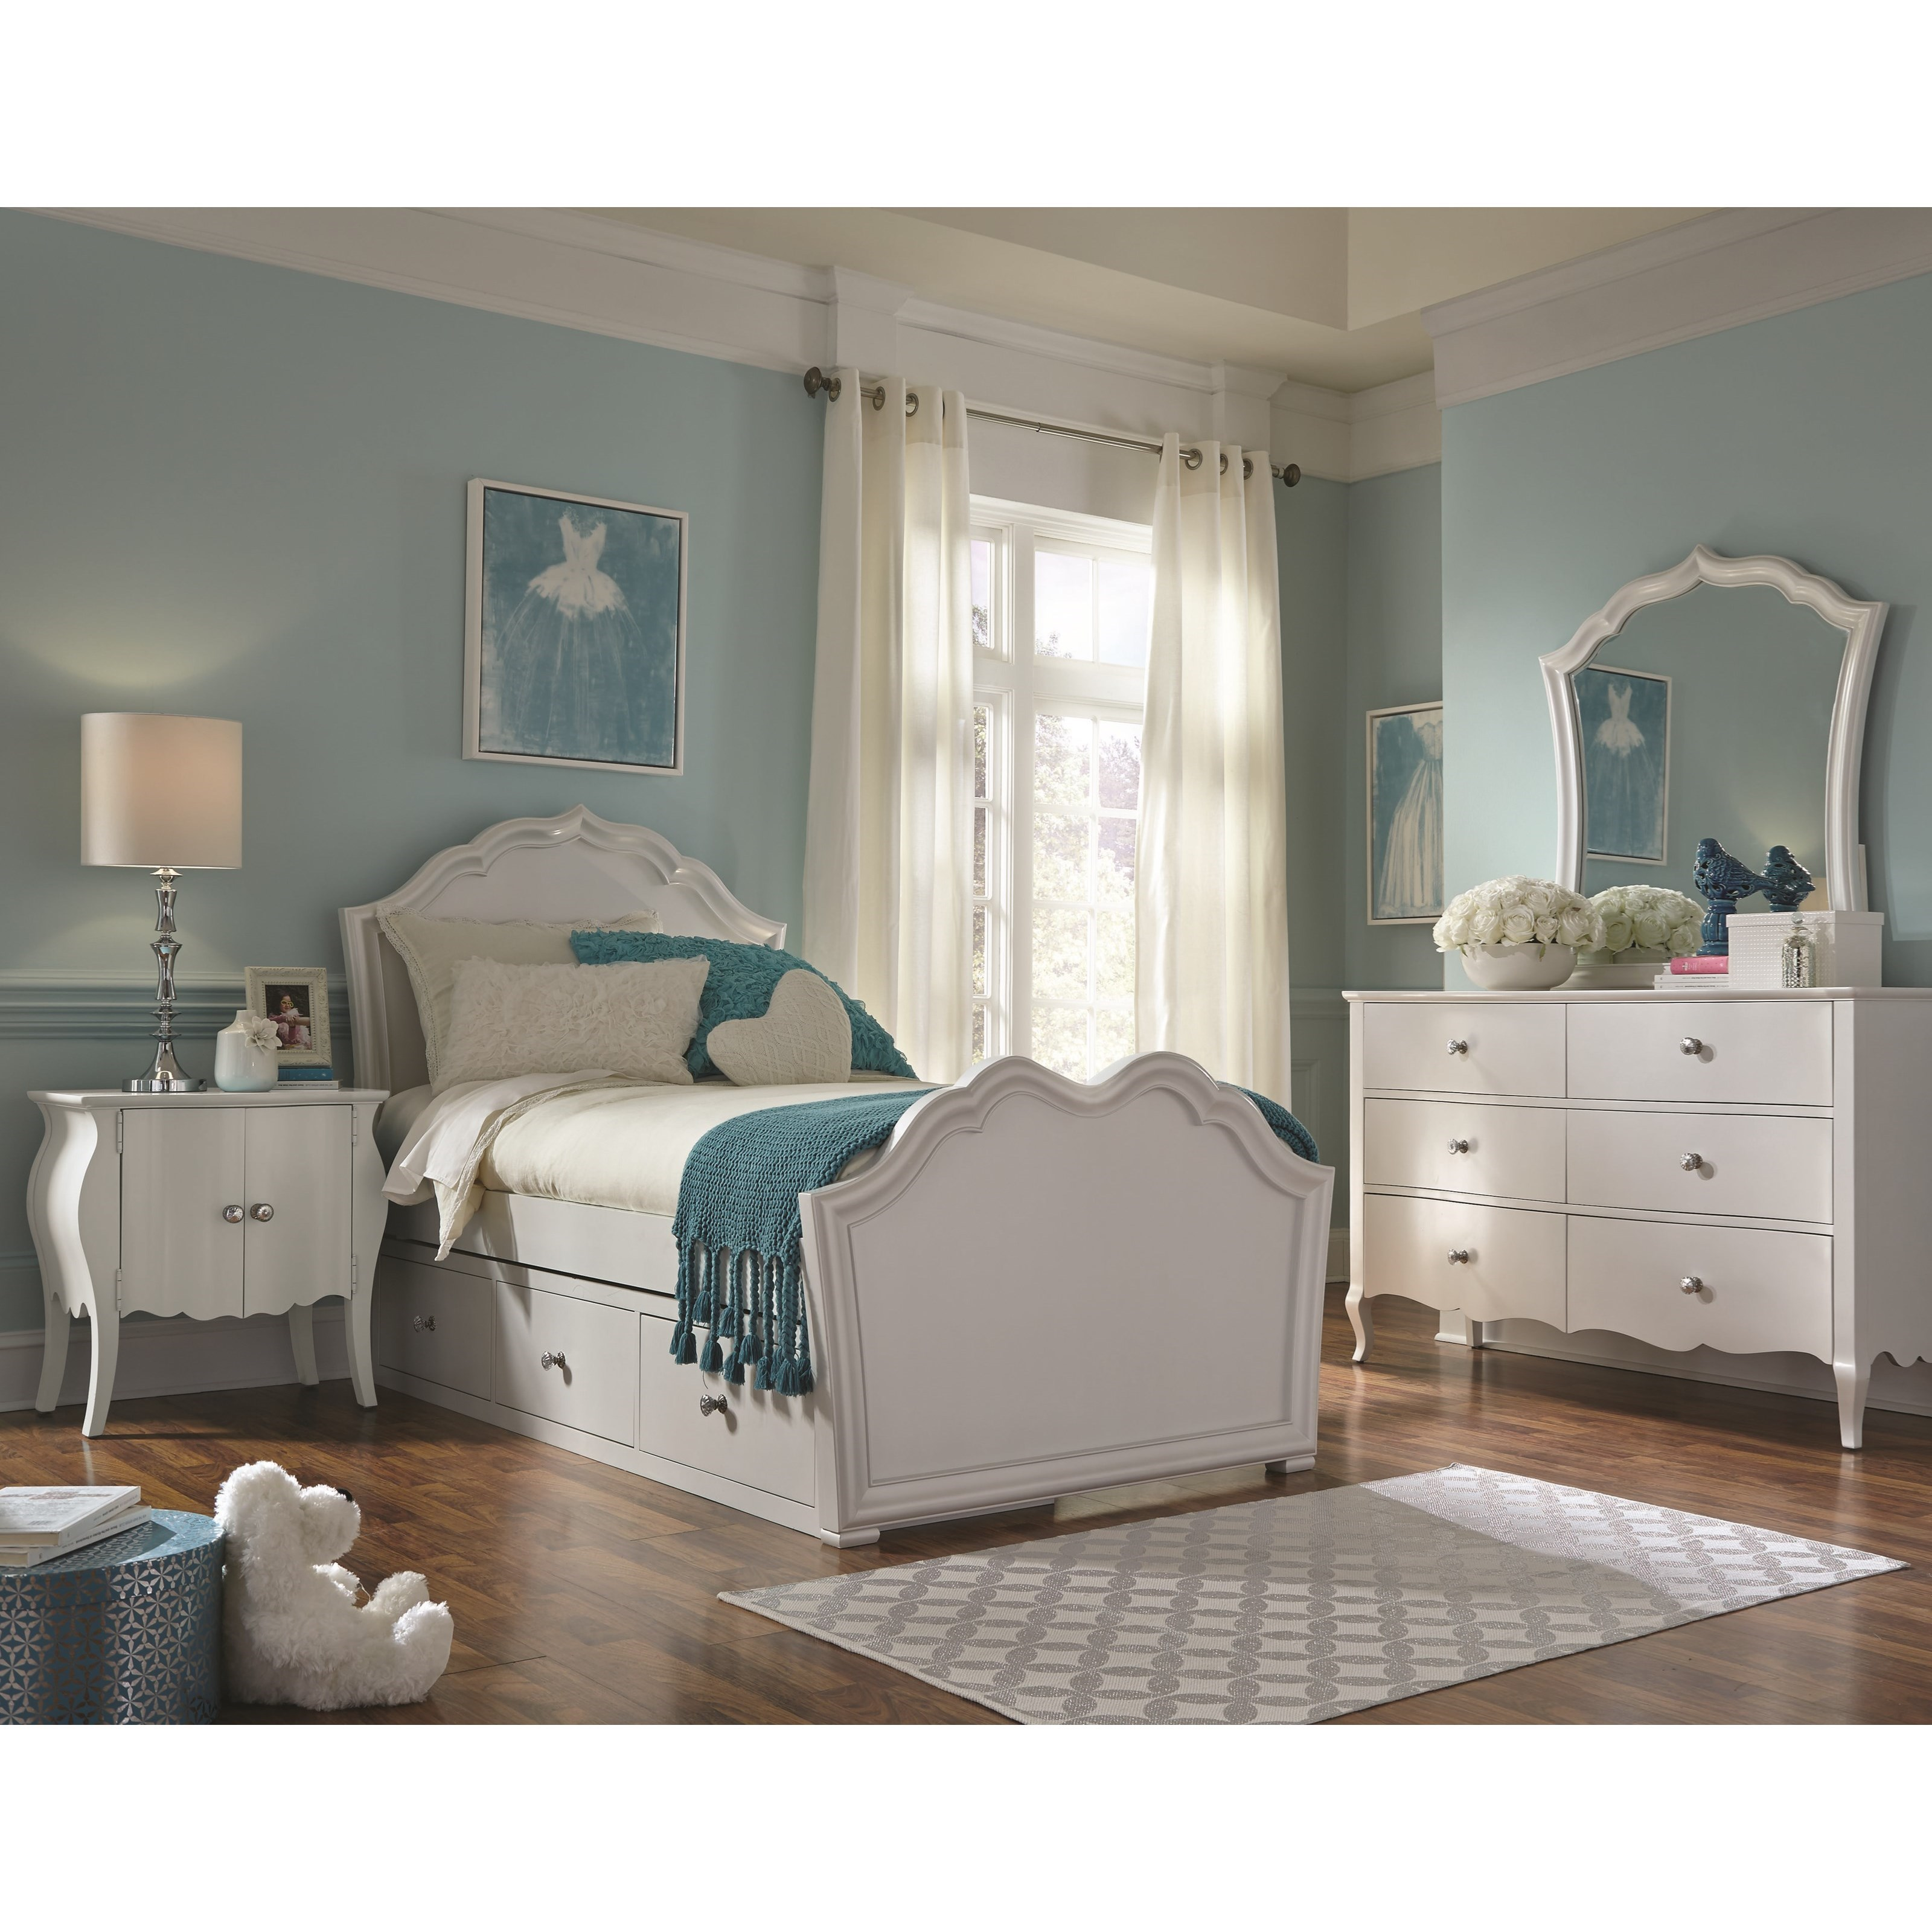 Legacy Classic Kids Tiffany Full Bedroom Group - Item Number: 5930-4104k+3101+1100+0100+9300